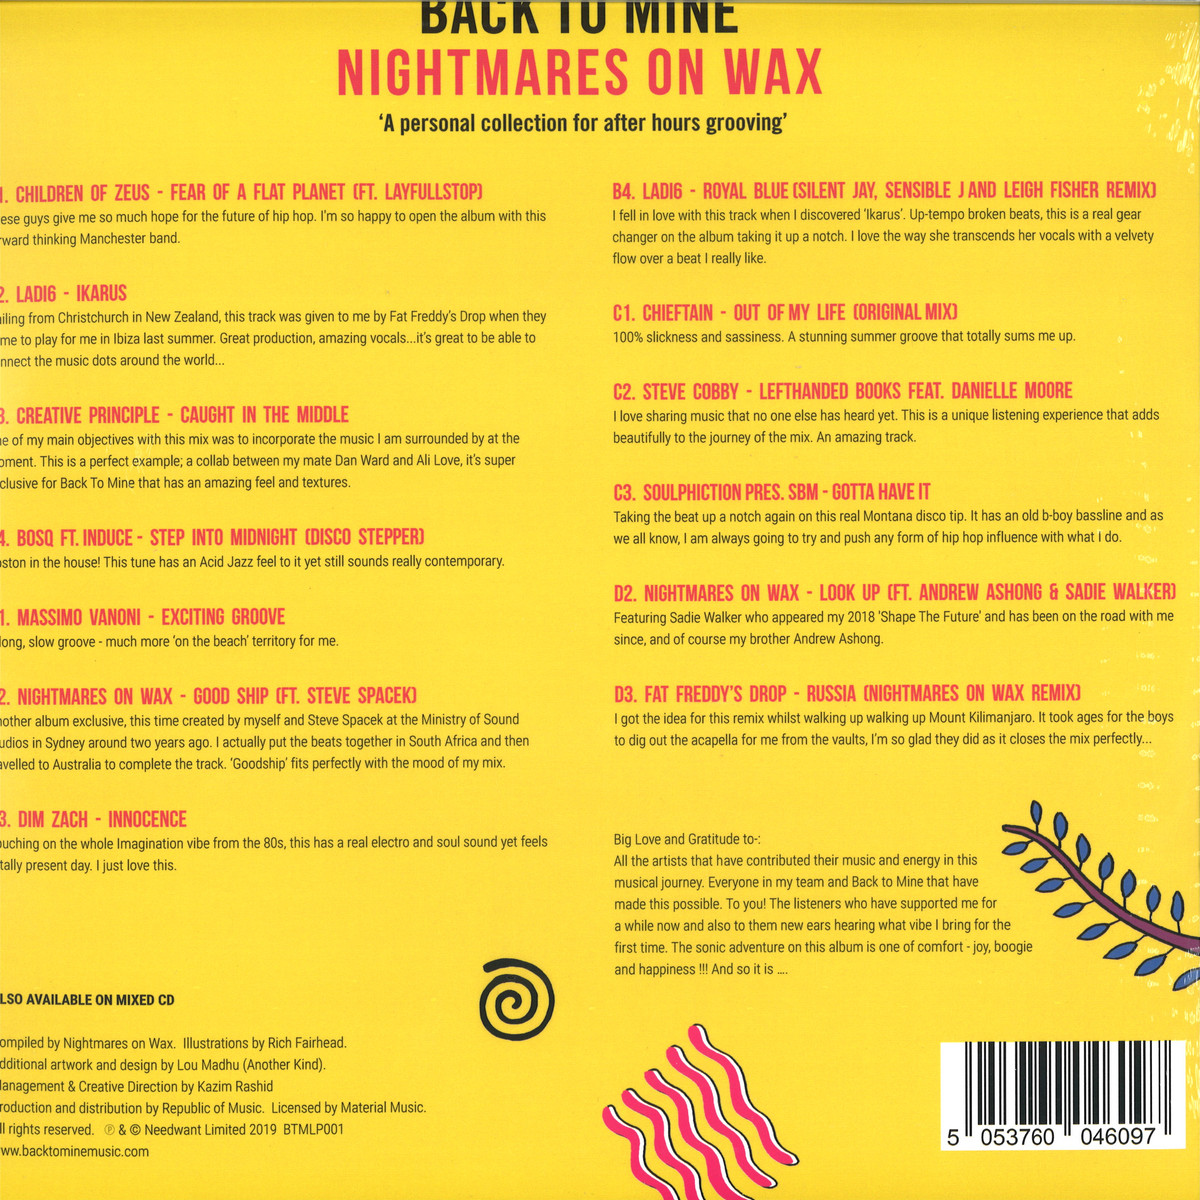 Nightmares On Wax - Back To Mine (Back To Mine) / Back to